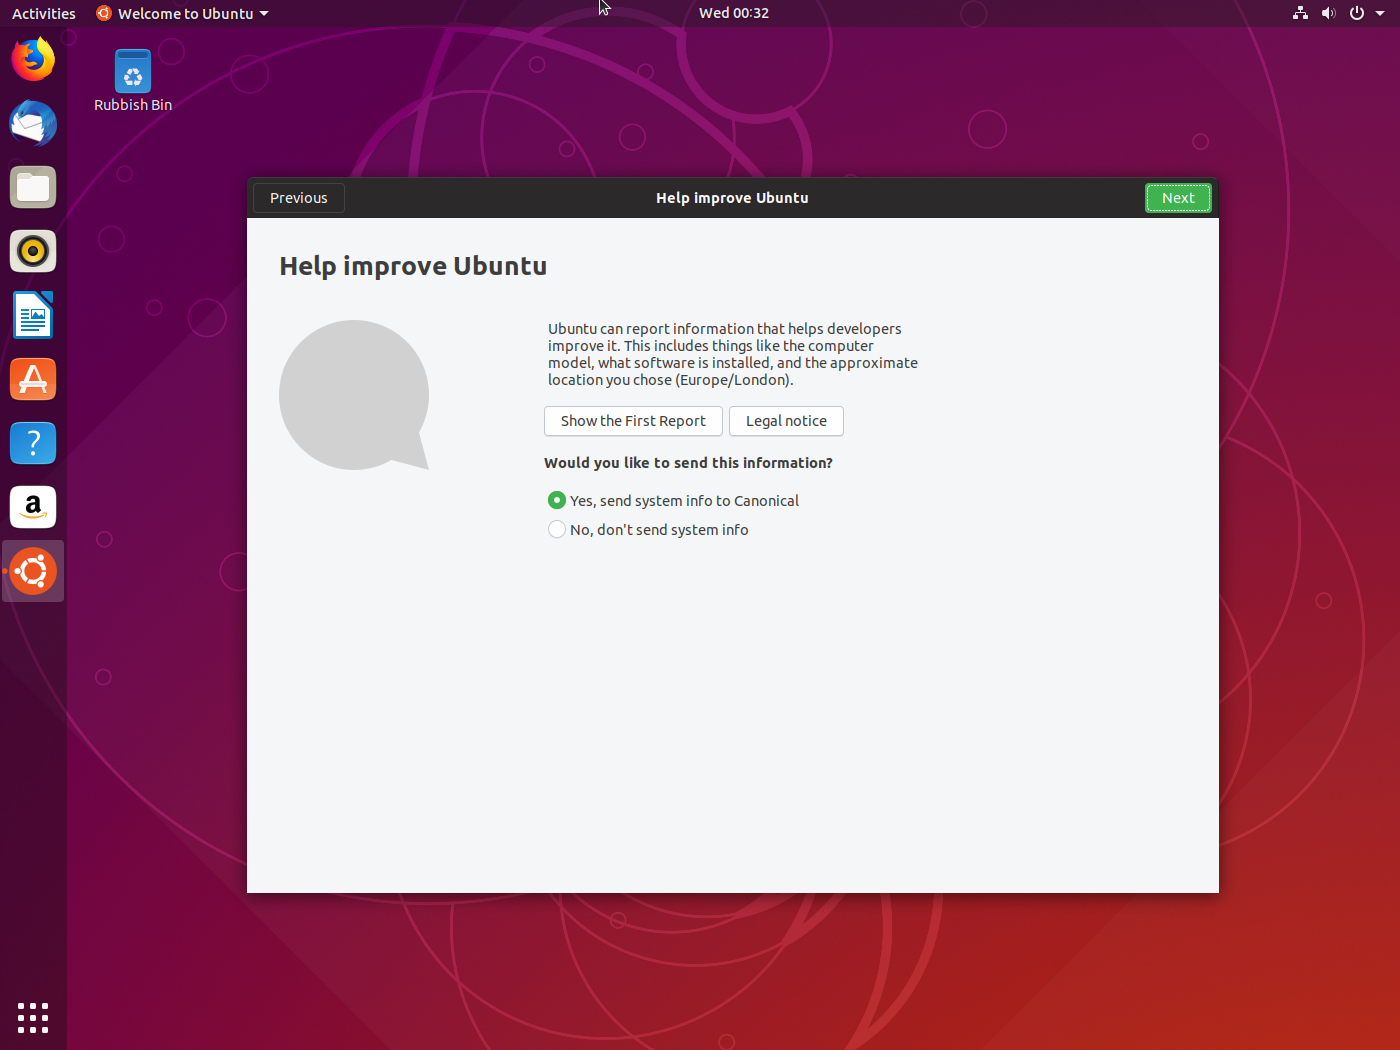 Ubuntu Report permission page